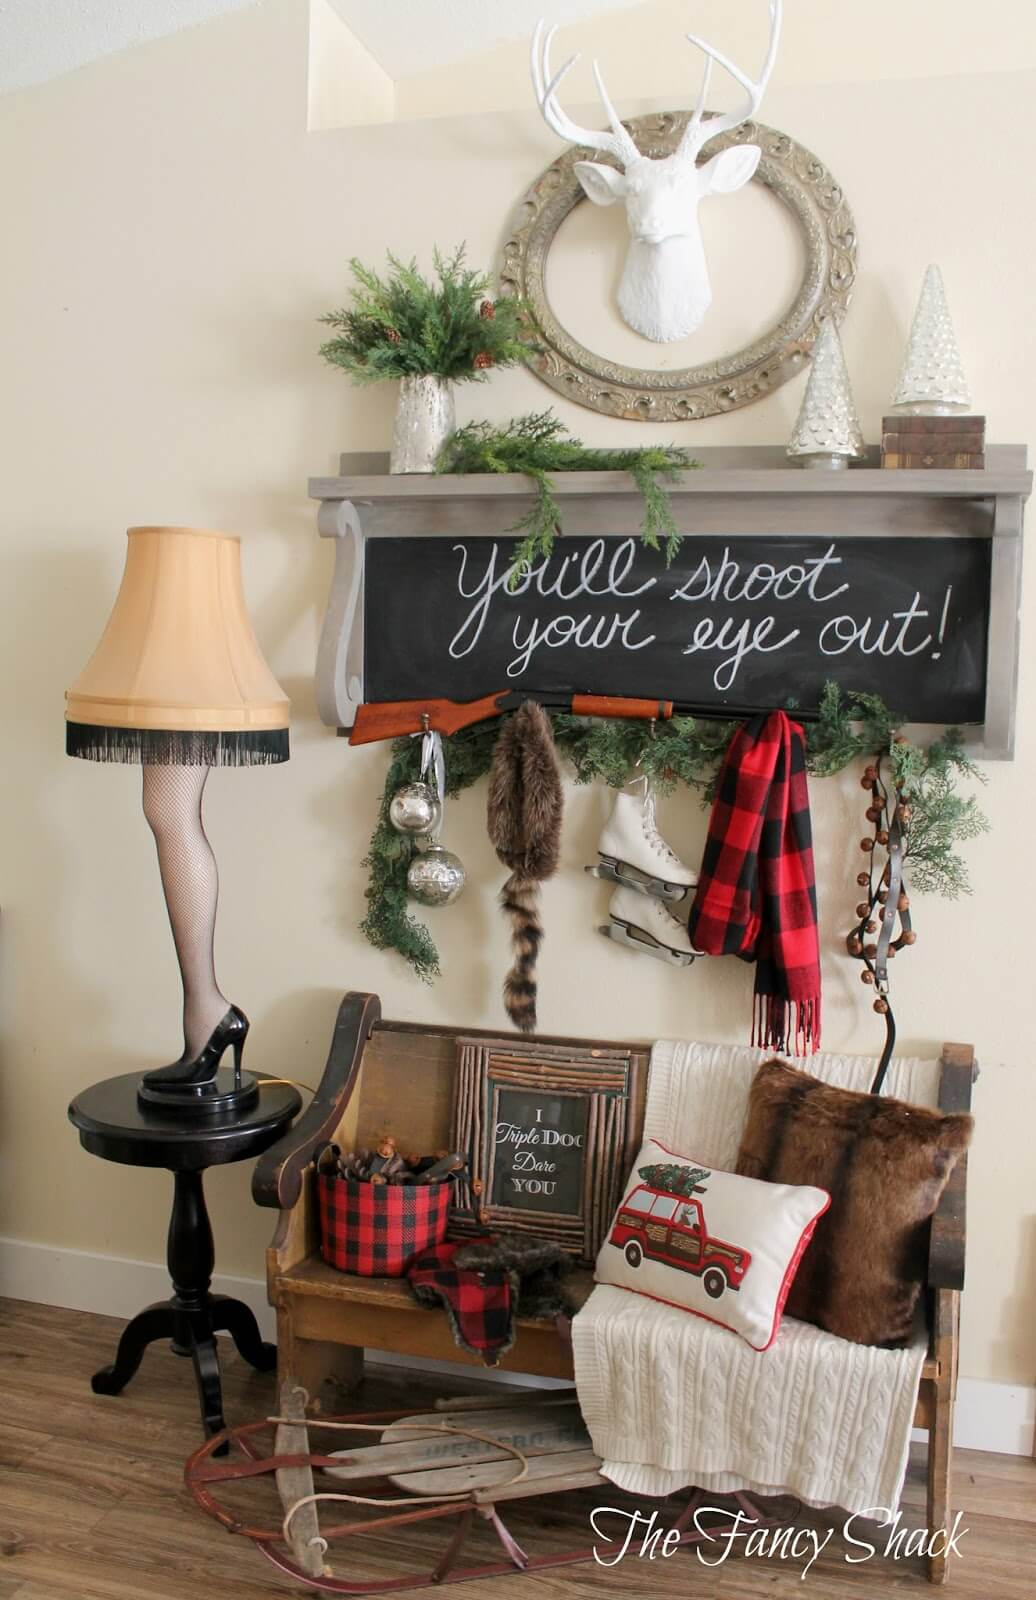 3. Eclectic Farmhouse Style Entryway With Chalkboard